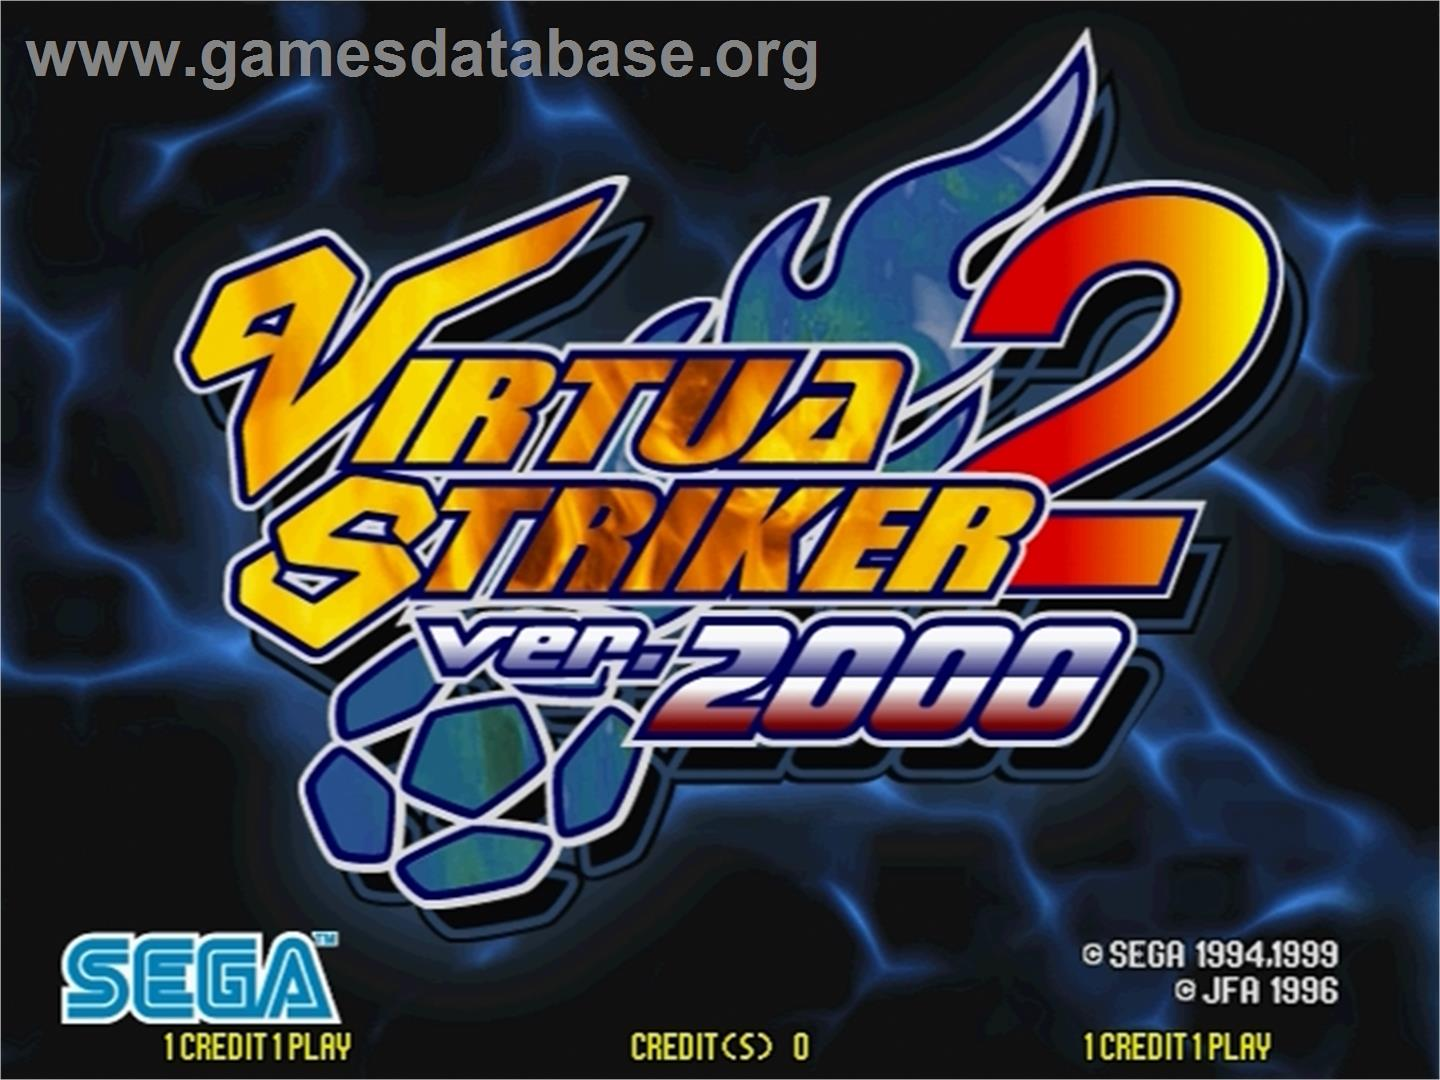 Virtua Striker 2 Ver. 2000 - Sega Naomi - Artwork - Title Screen